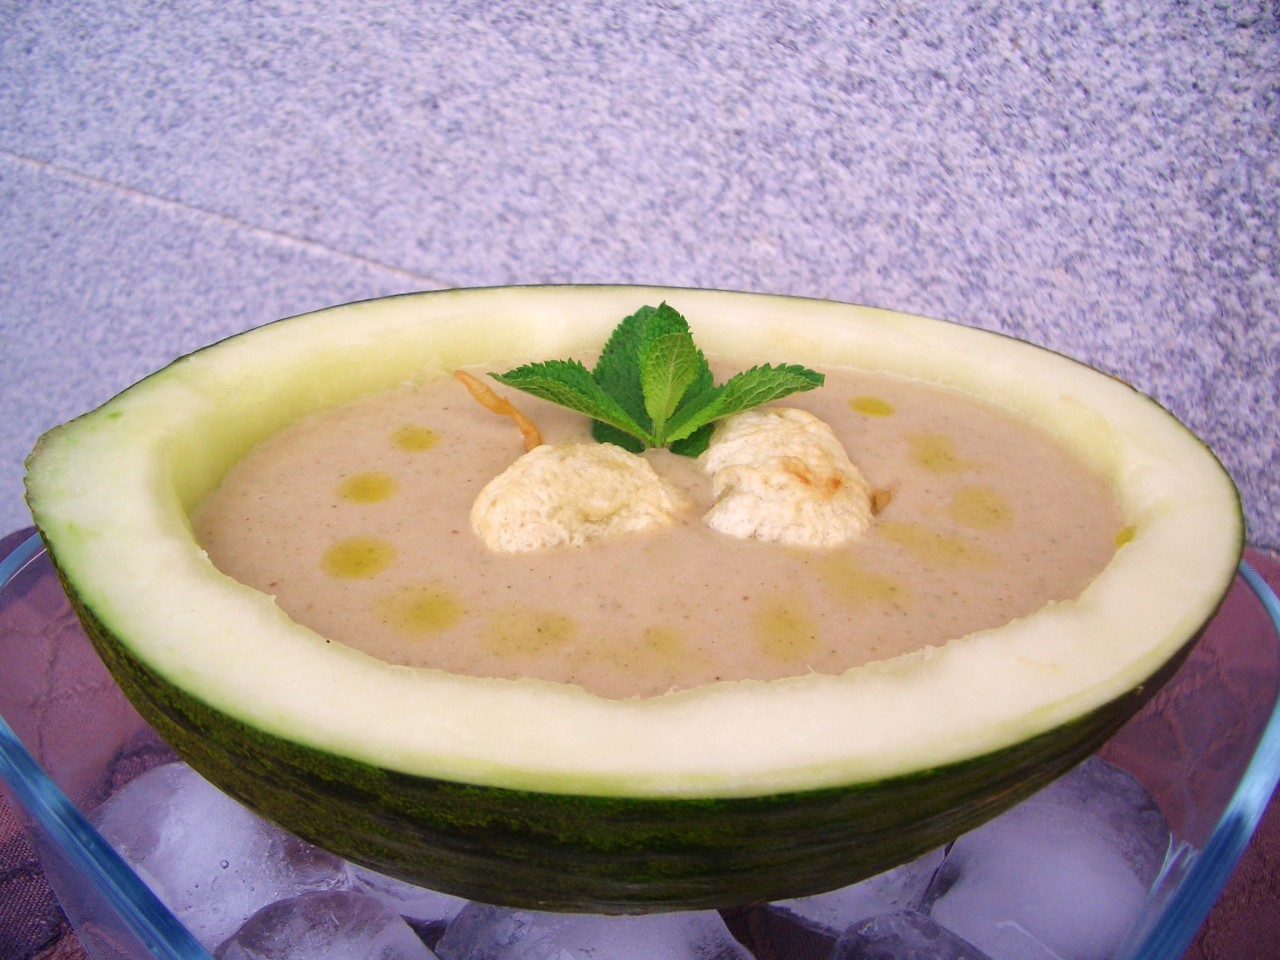 Sopa de Melón, Menta y Boletus – Melon, Mint and Mushroom Soup